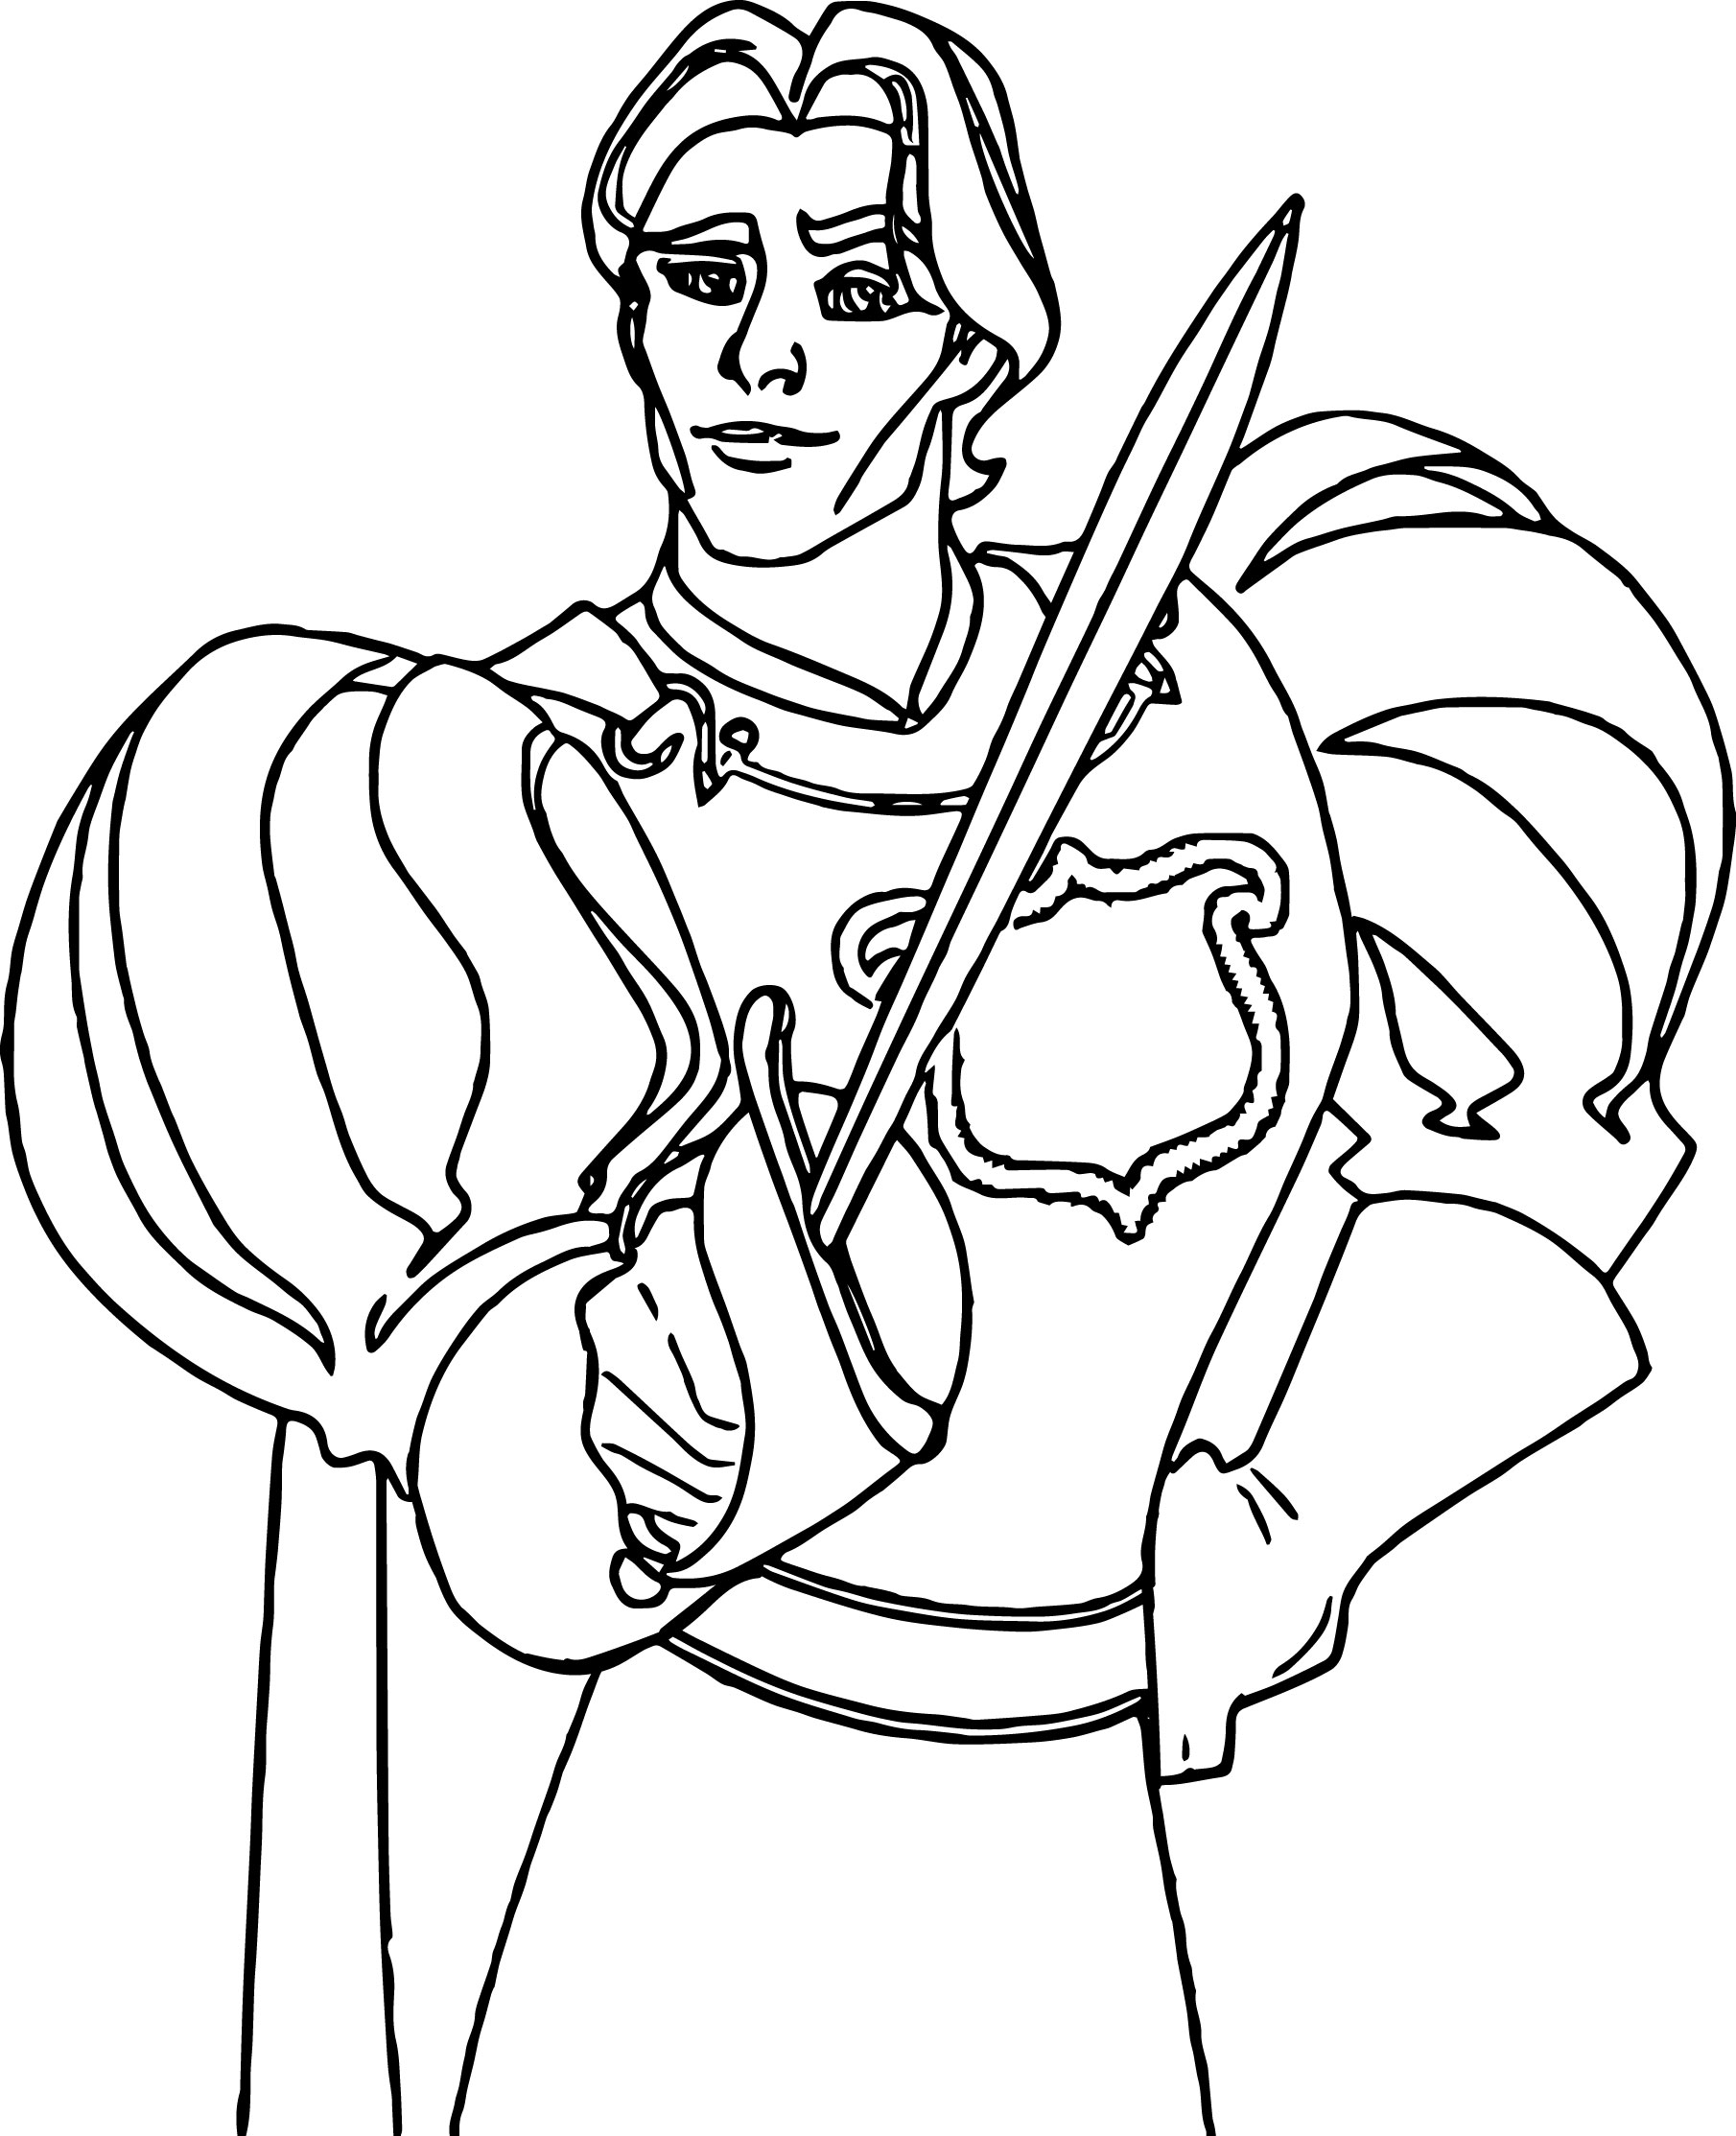 Disney Enchanted Prince Coloring Pages 03